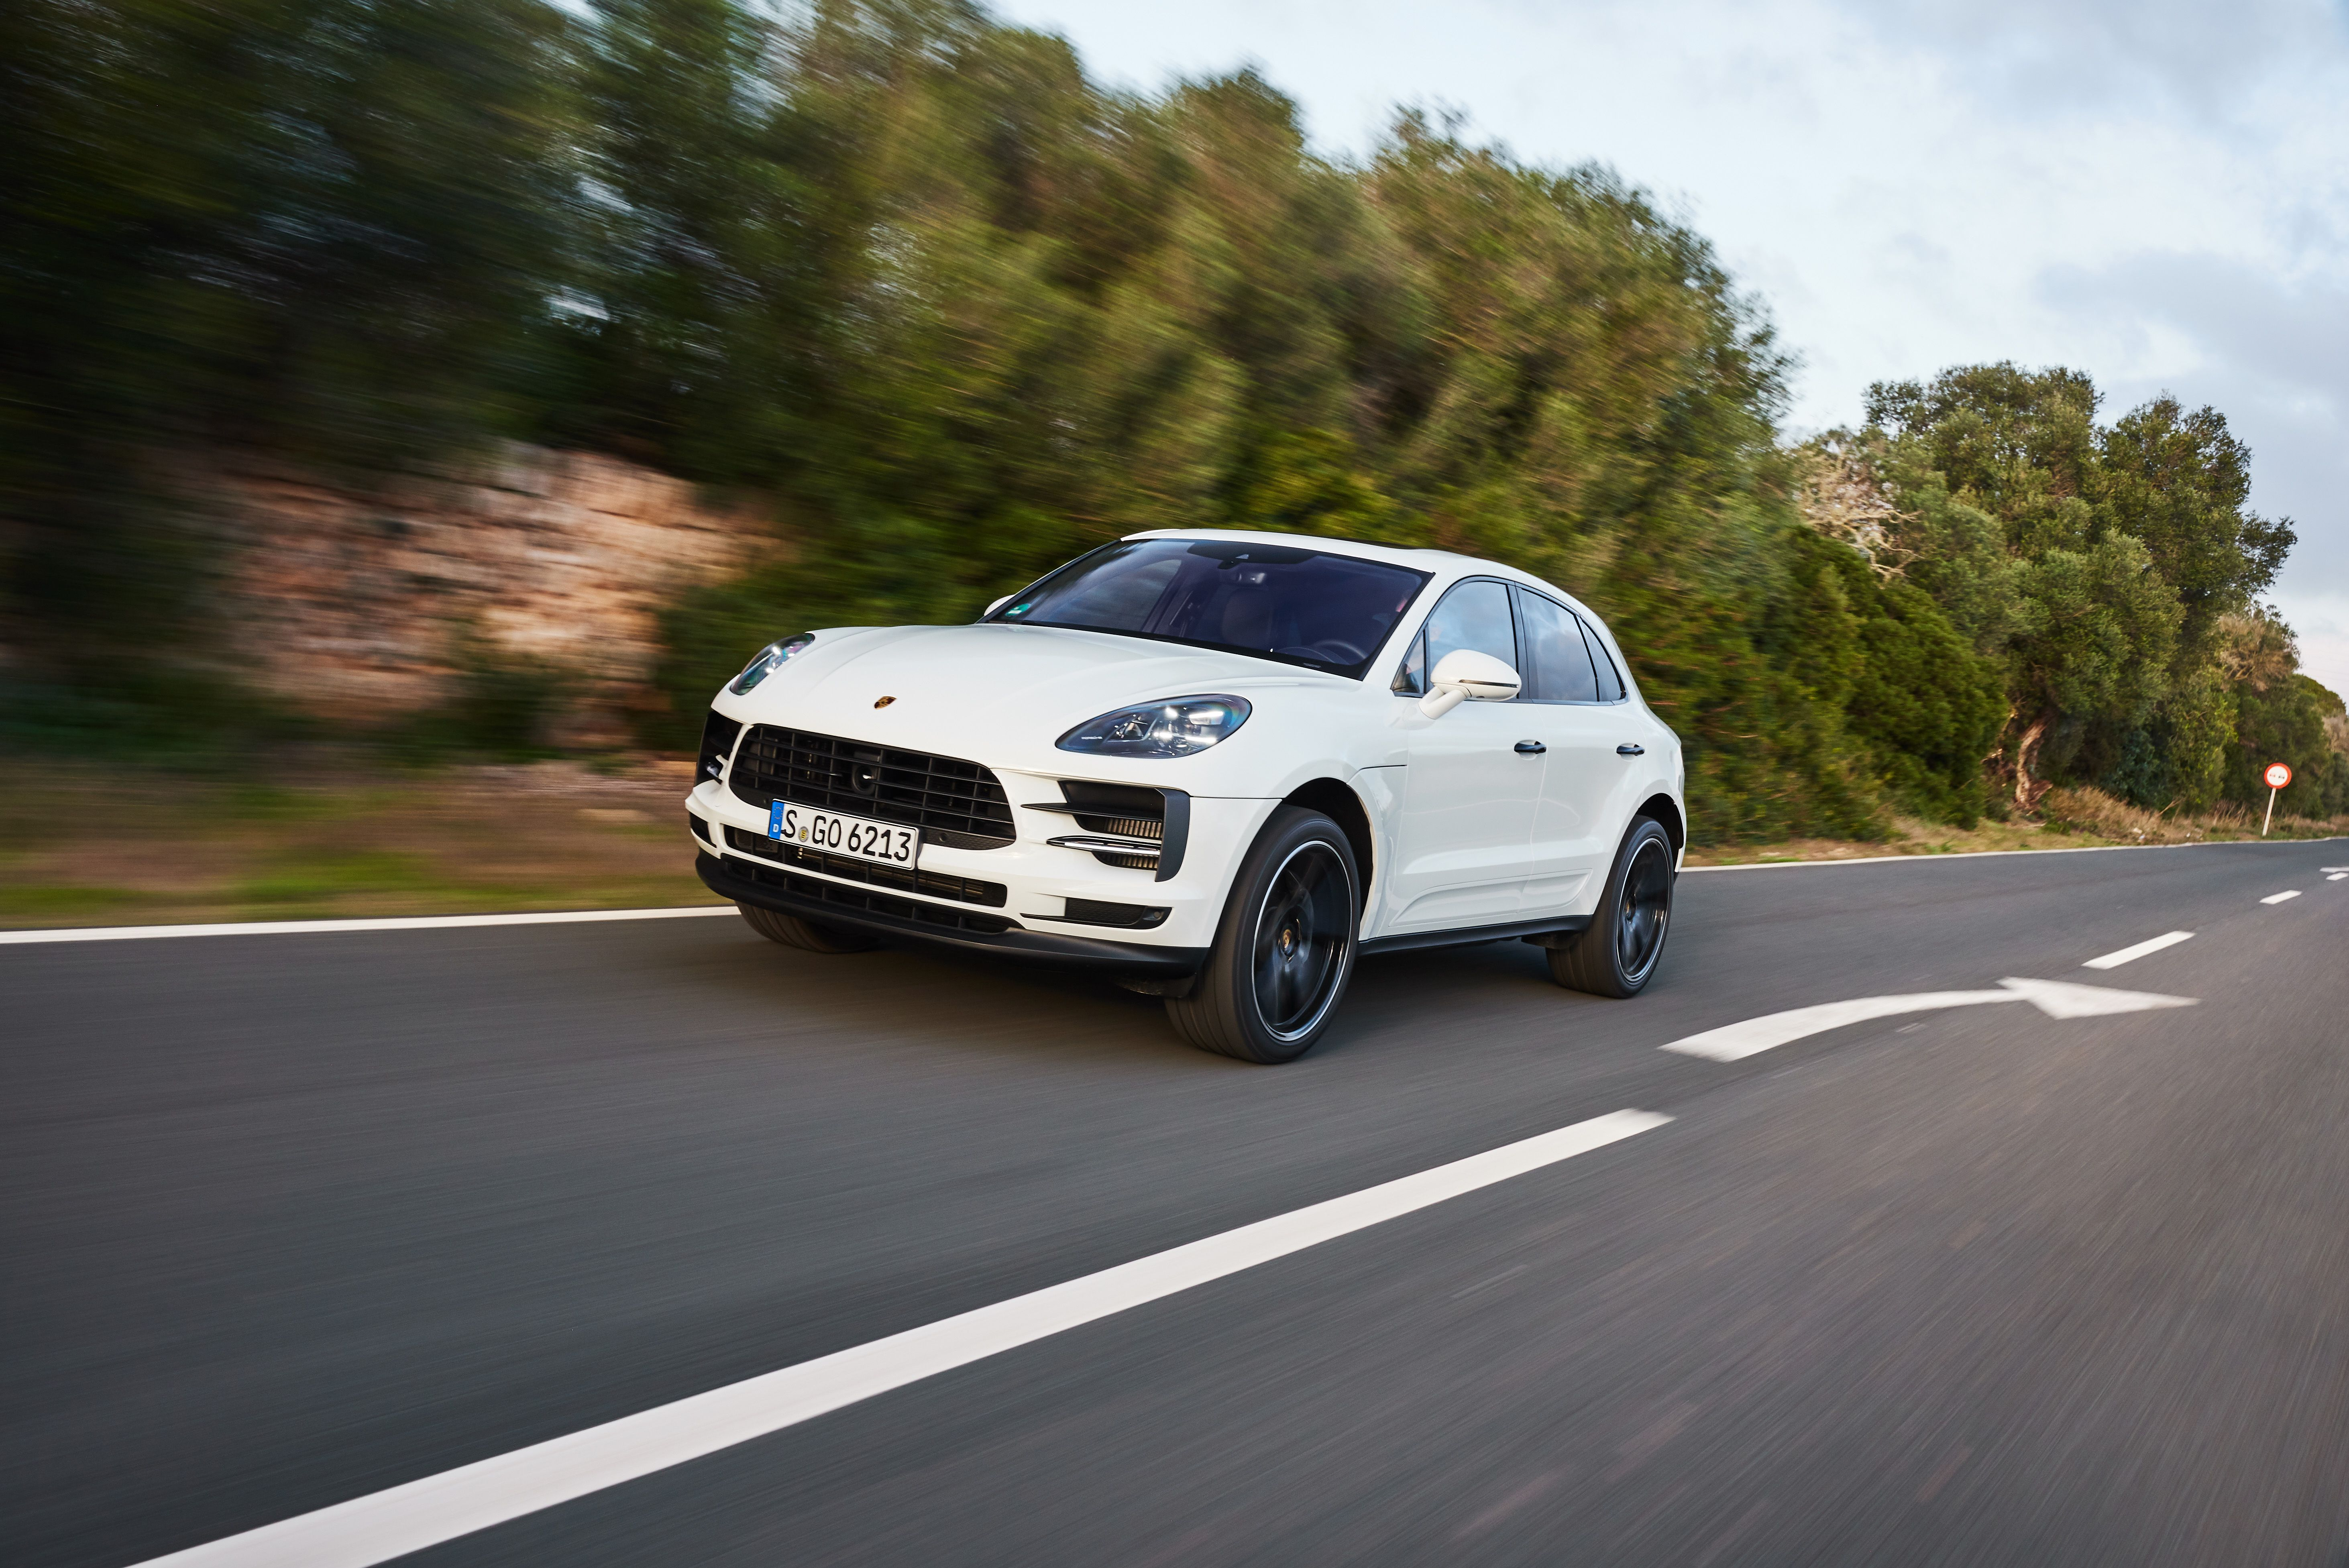 2020 Porsche Macan Review, Pricing, and Specs